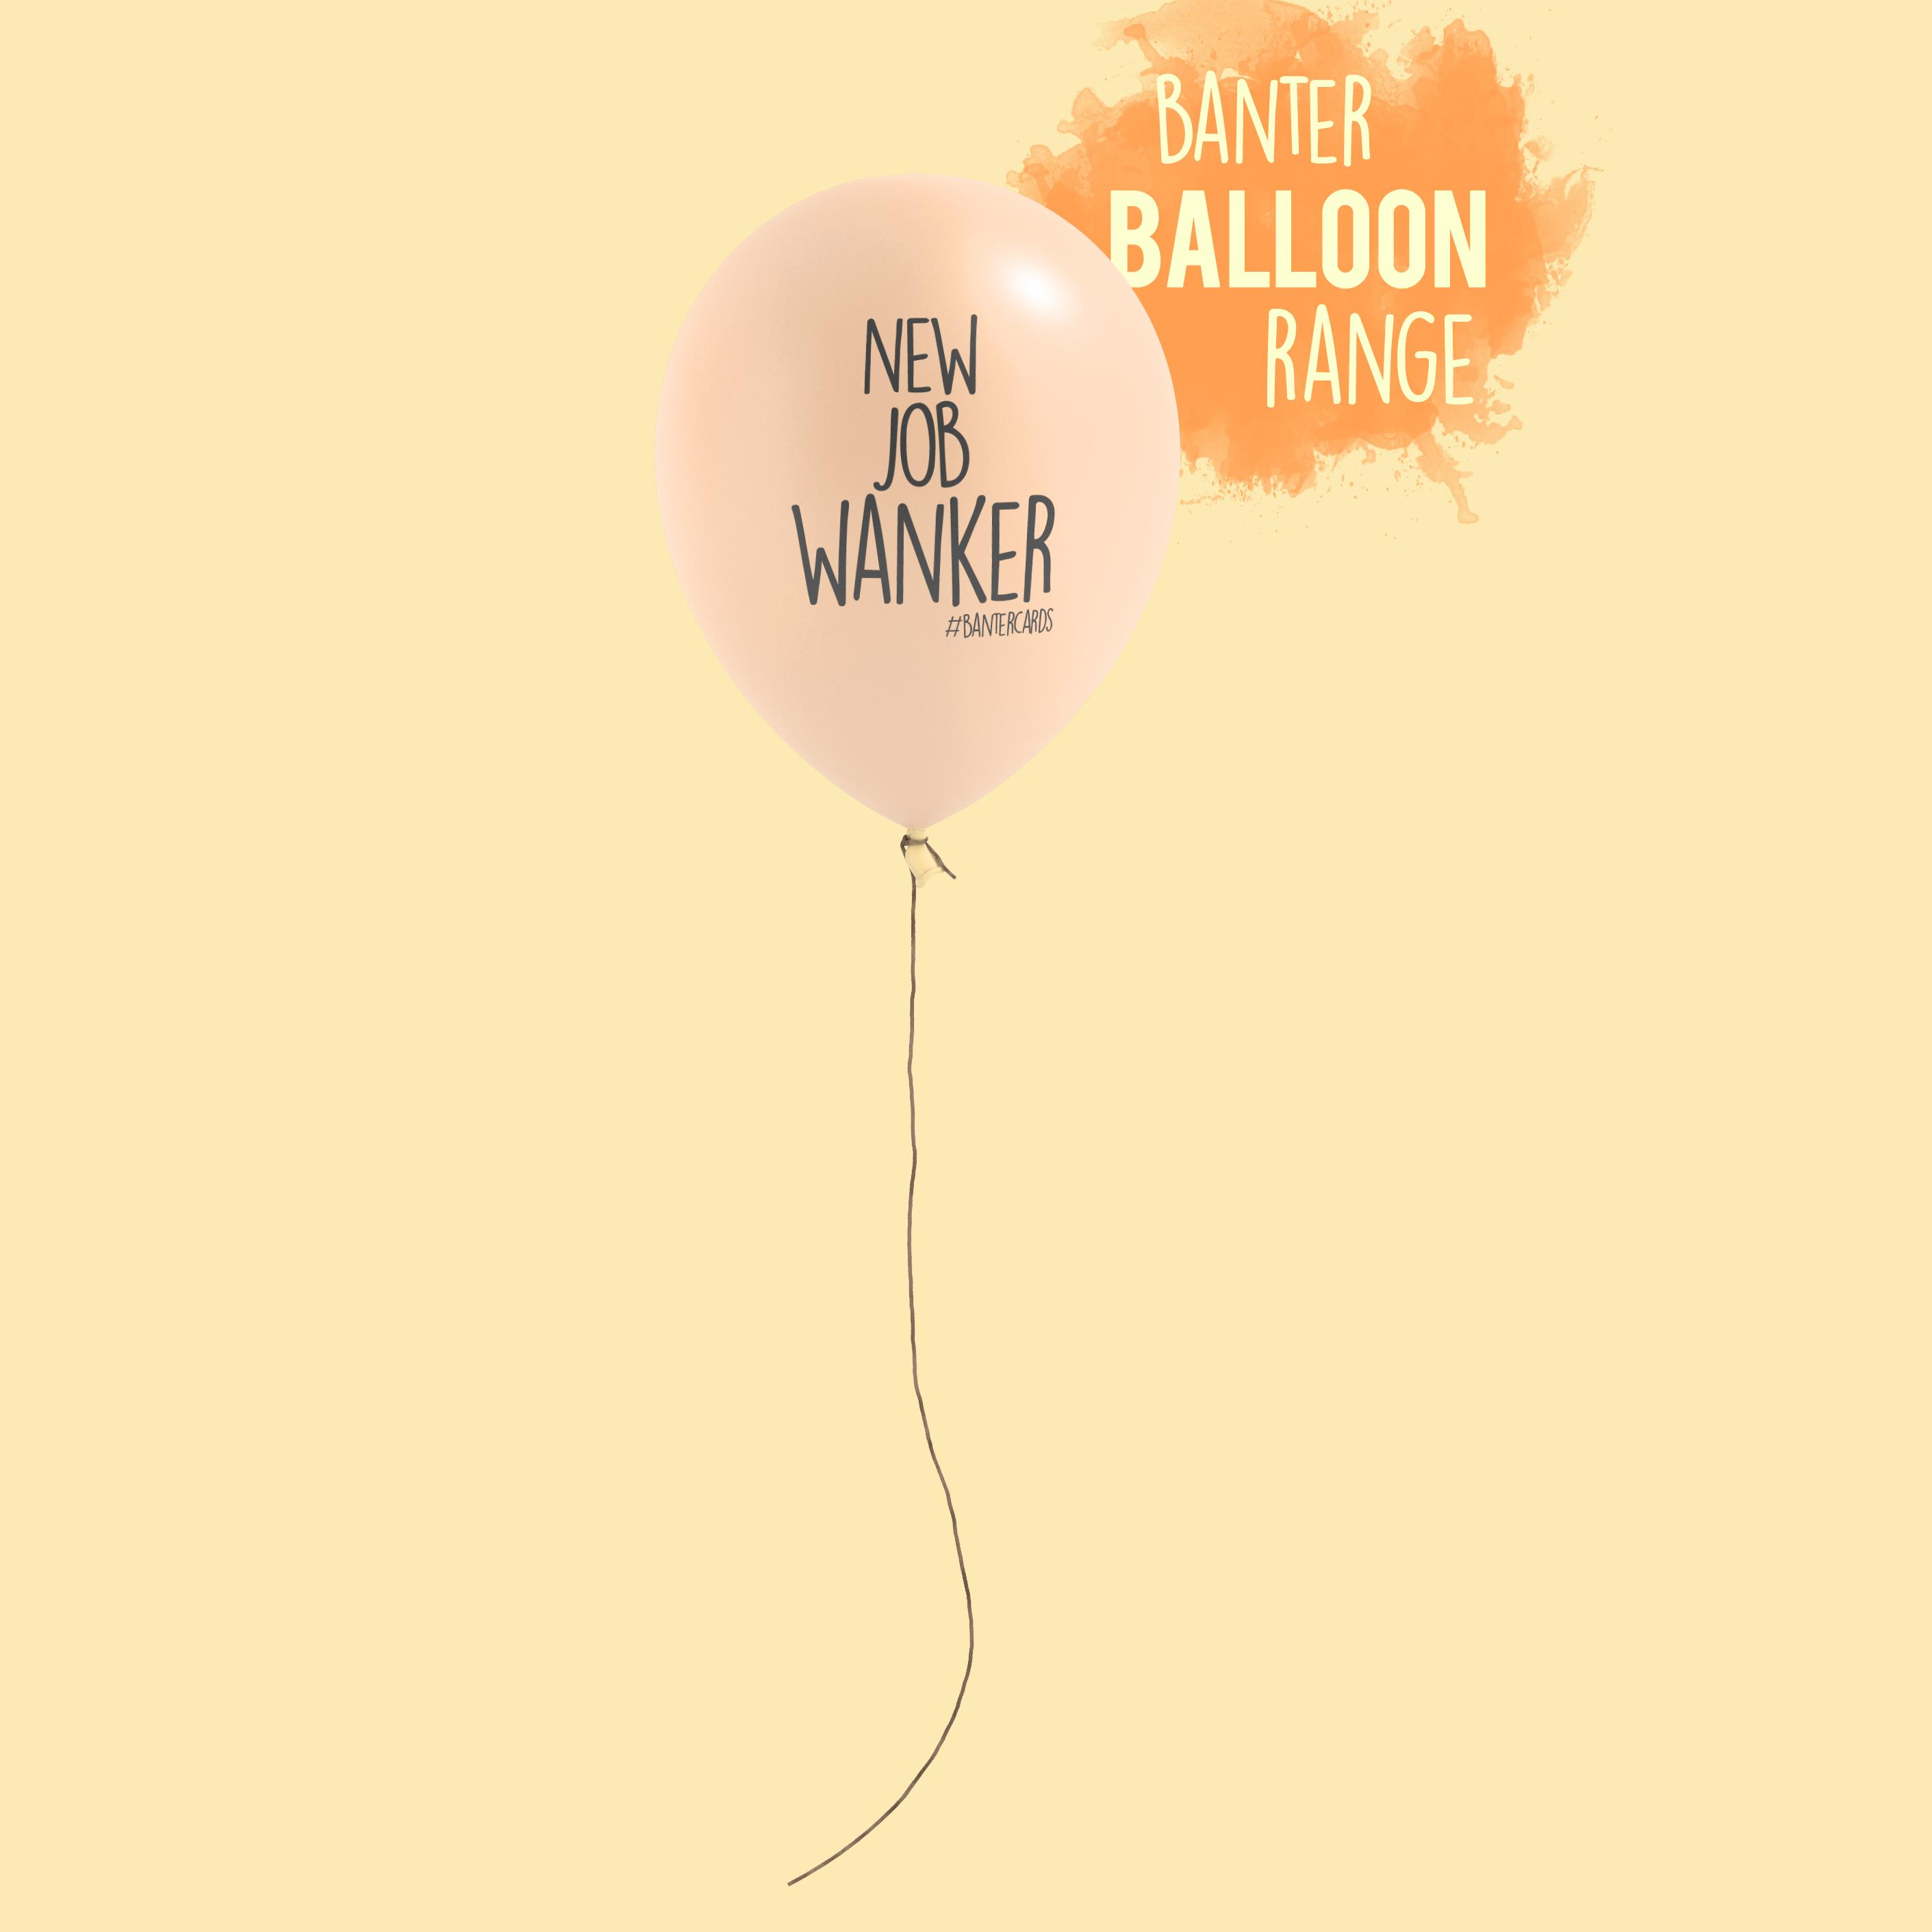 Banter Cards Balloons